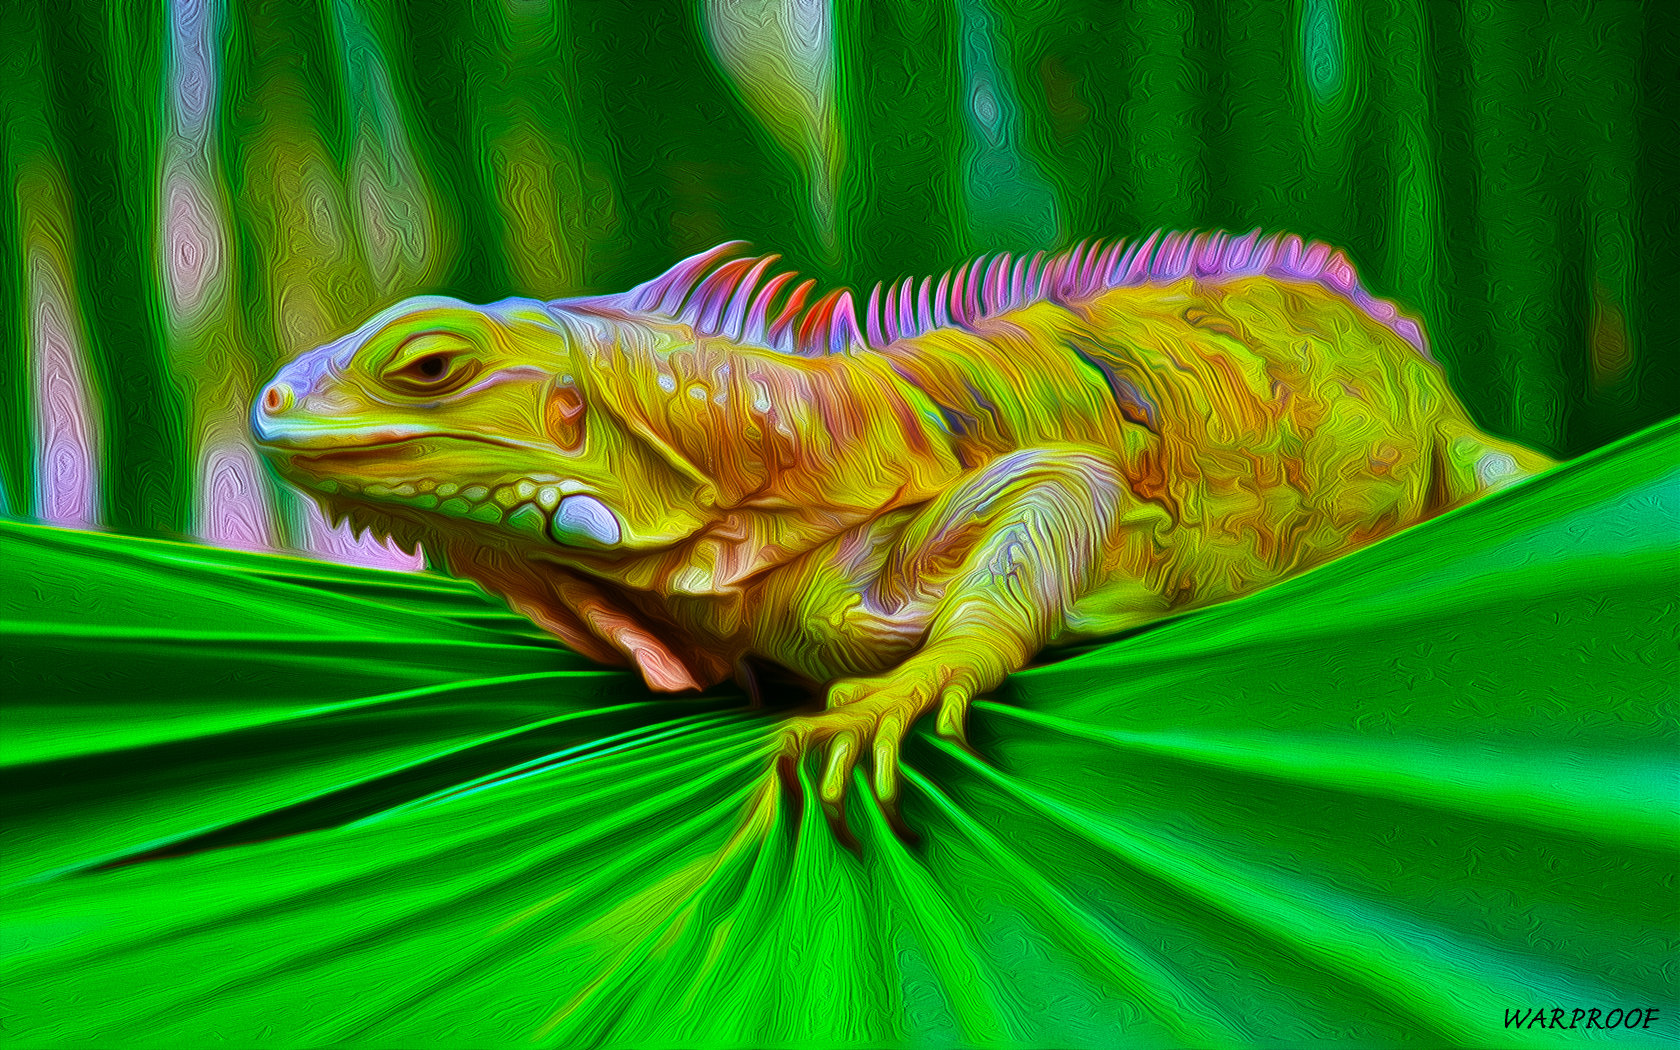 Free Iguana high quality wallpaper ID:380939 for hd 1680x1050 desktop